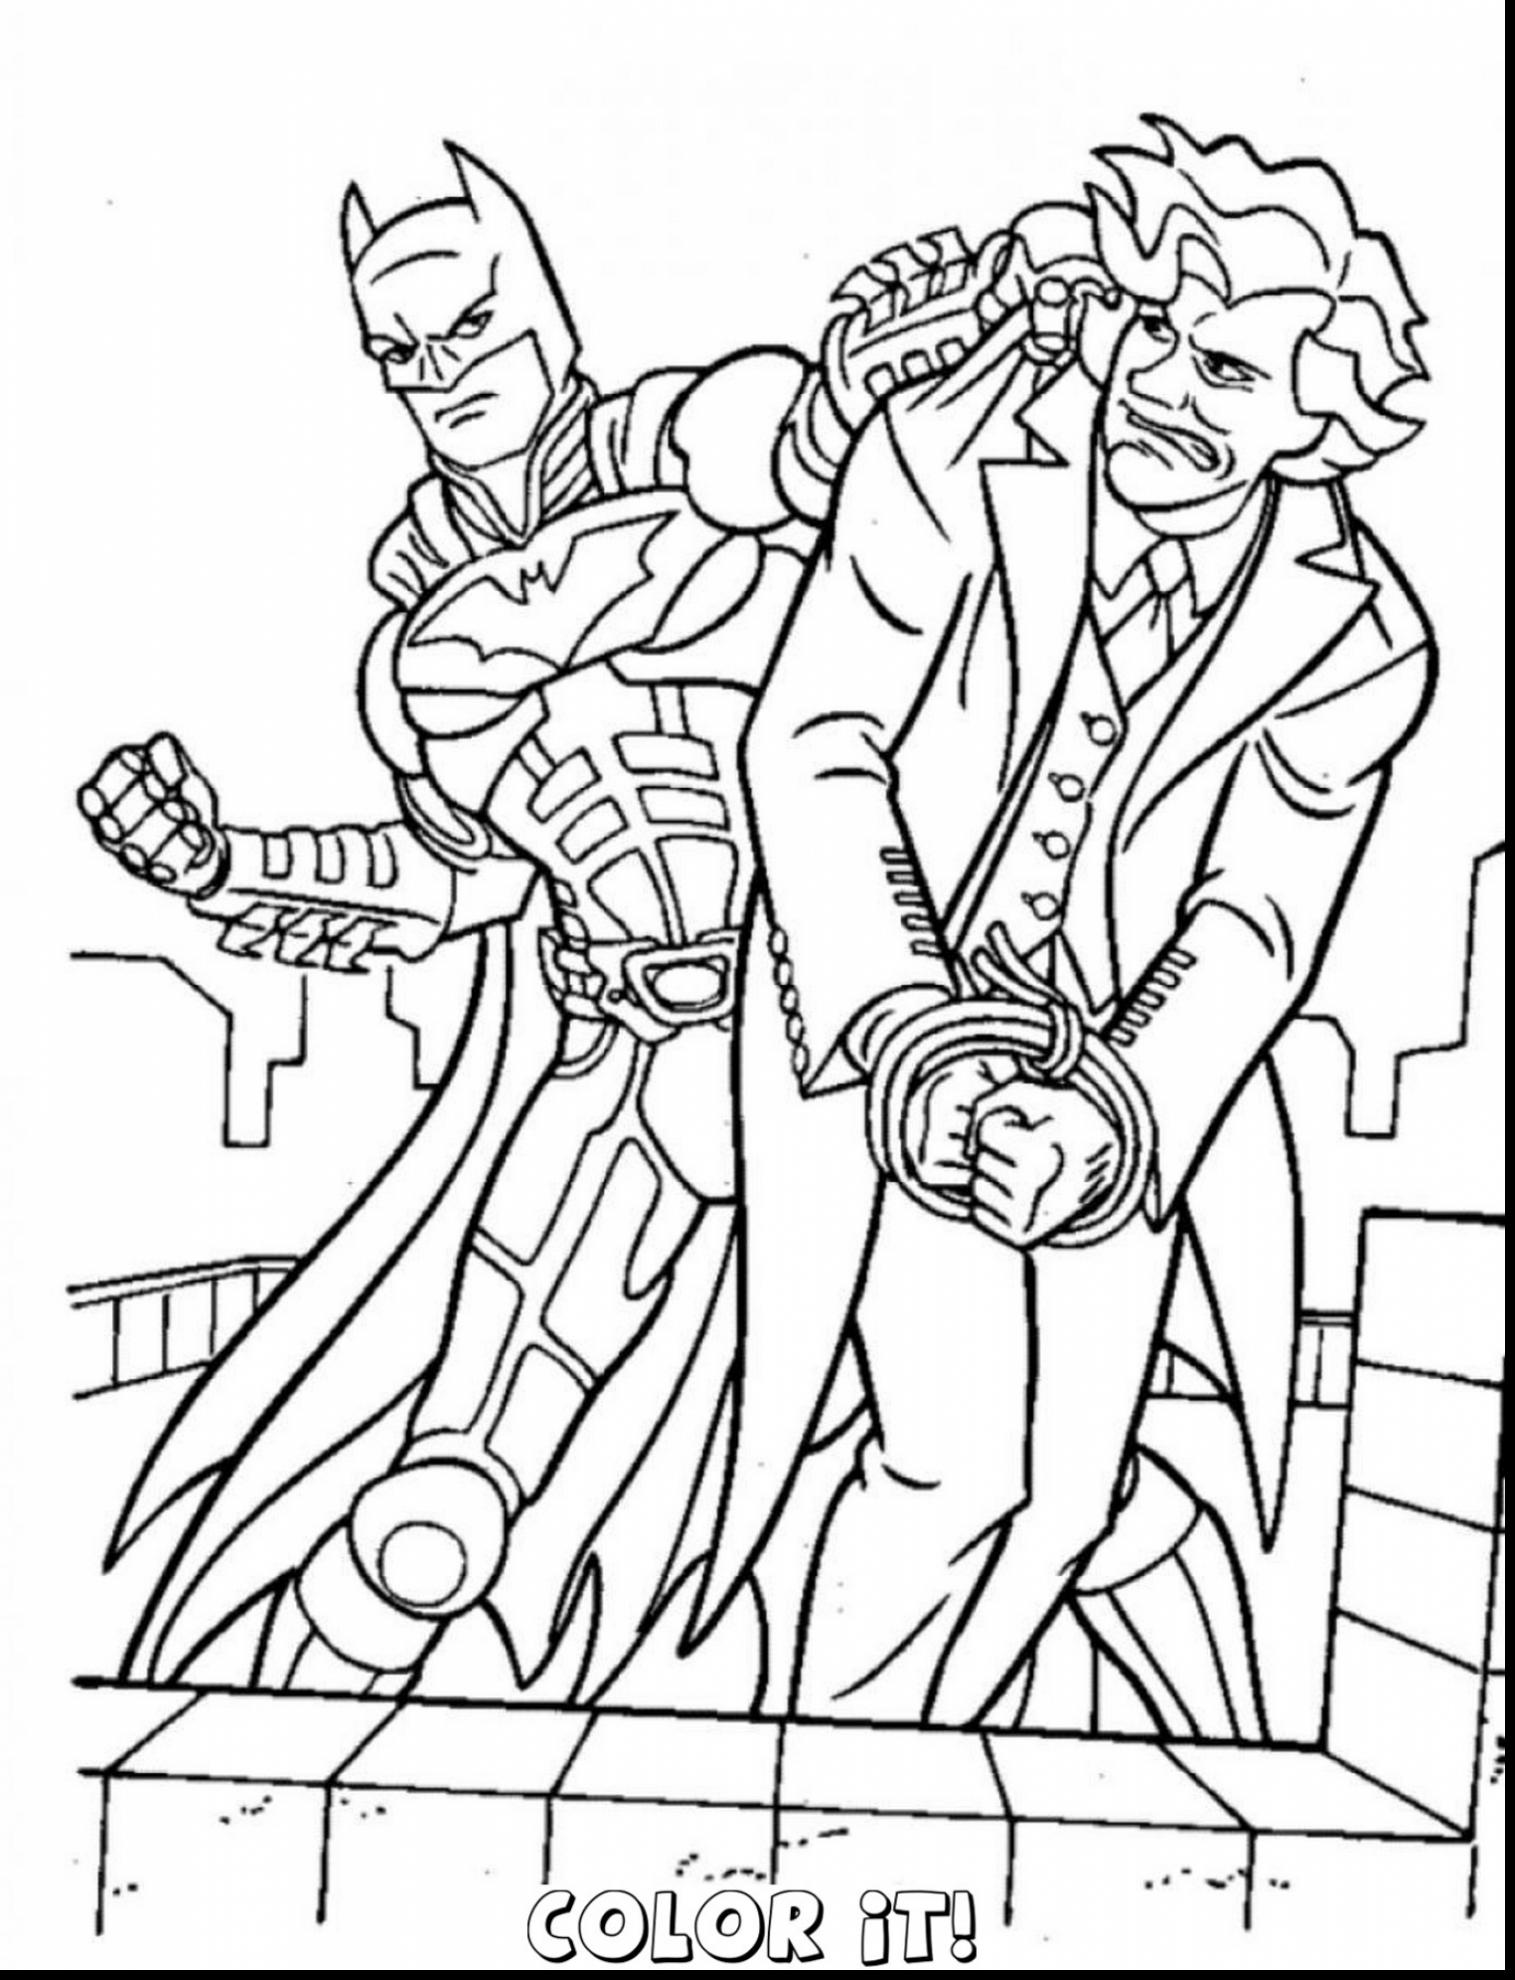 Batman Robin Coloring Pages At Getdrawings Com Free For Personal